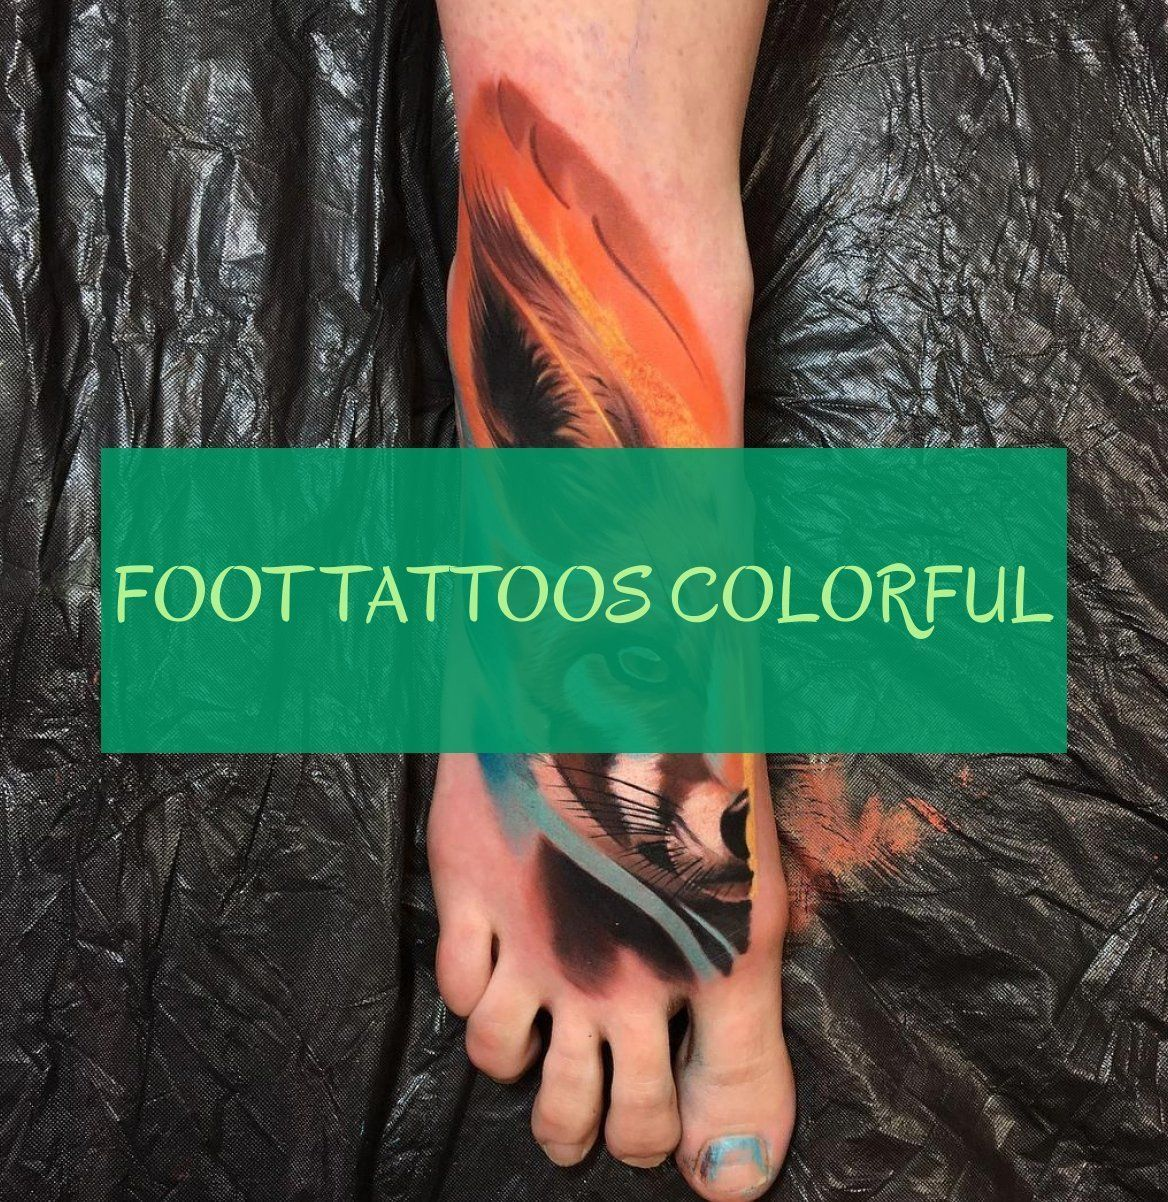 foot tattoos colorful fußtattoos bunt Foot Tattoos #rosaryfoottattoos foot tattoos colorful fußtattoos bunt Foot Tattoos #rosaryfoottattoos foot tattoos colorful fußtattoos bunt Foot Tattoos #rosaryfoottattoos foot tattoos colorful fußtattoos bunt Foot Tattoos #rosaryfoottattoos